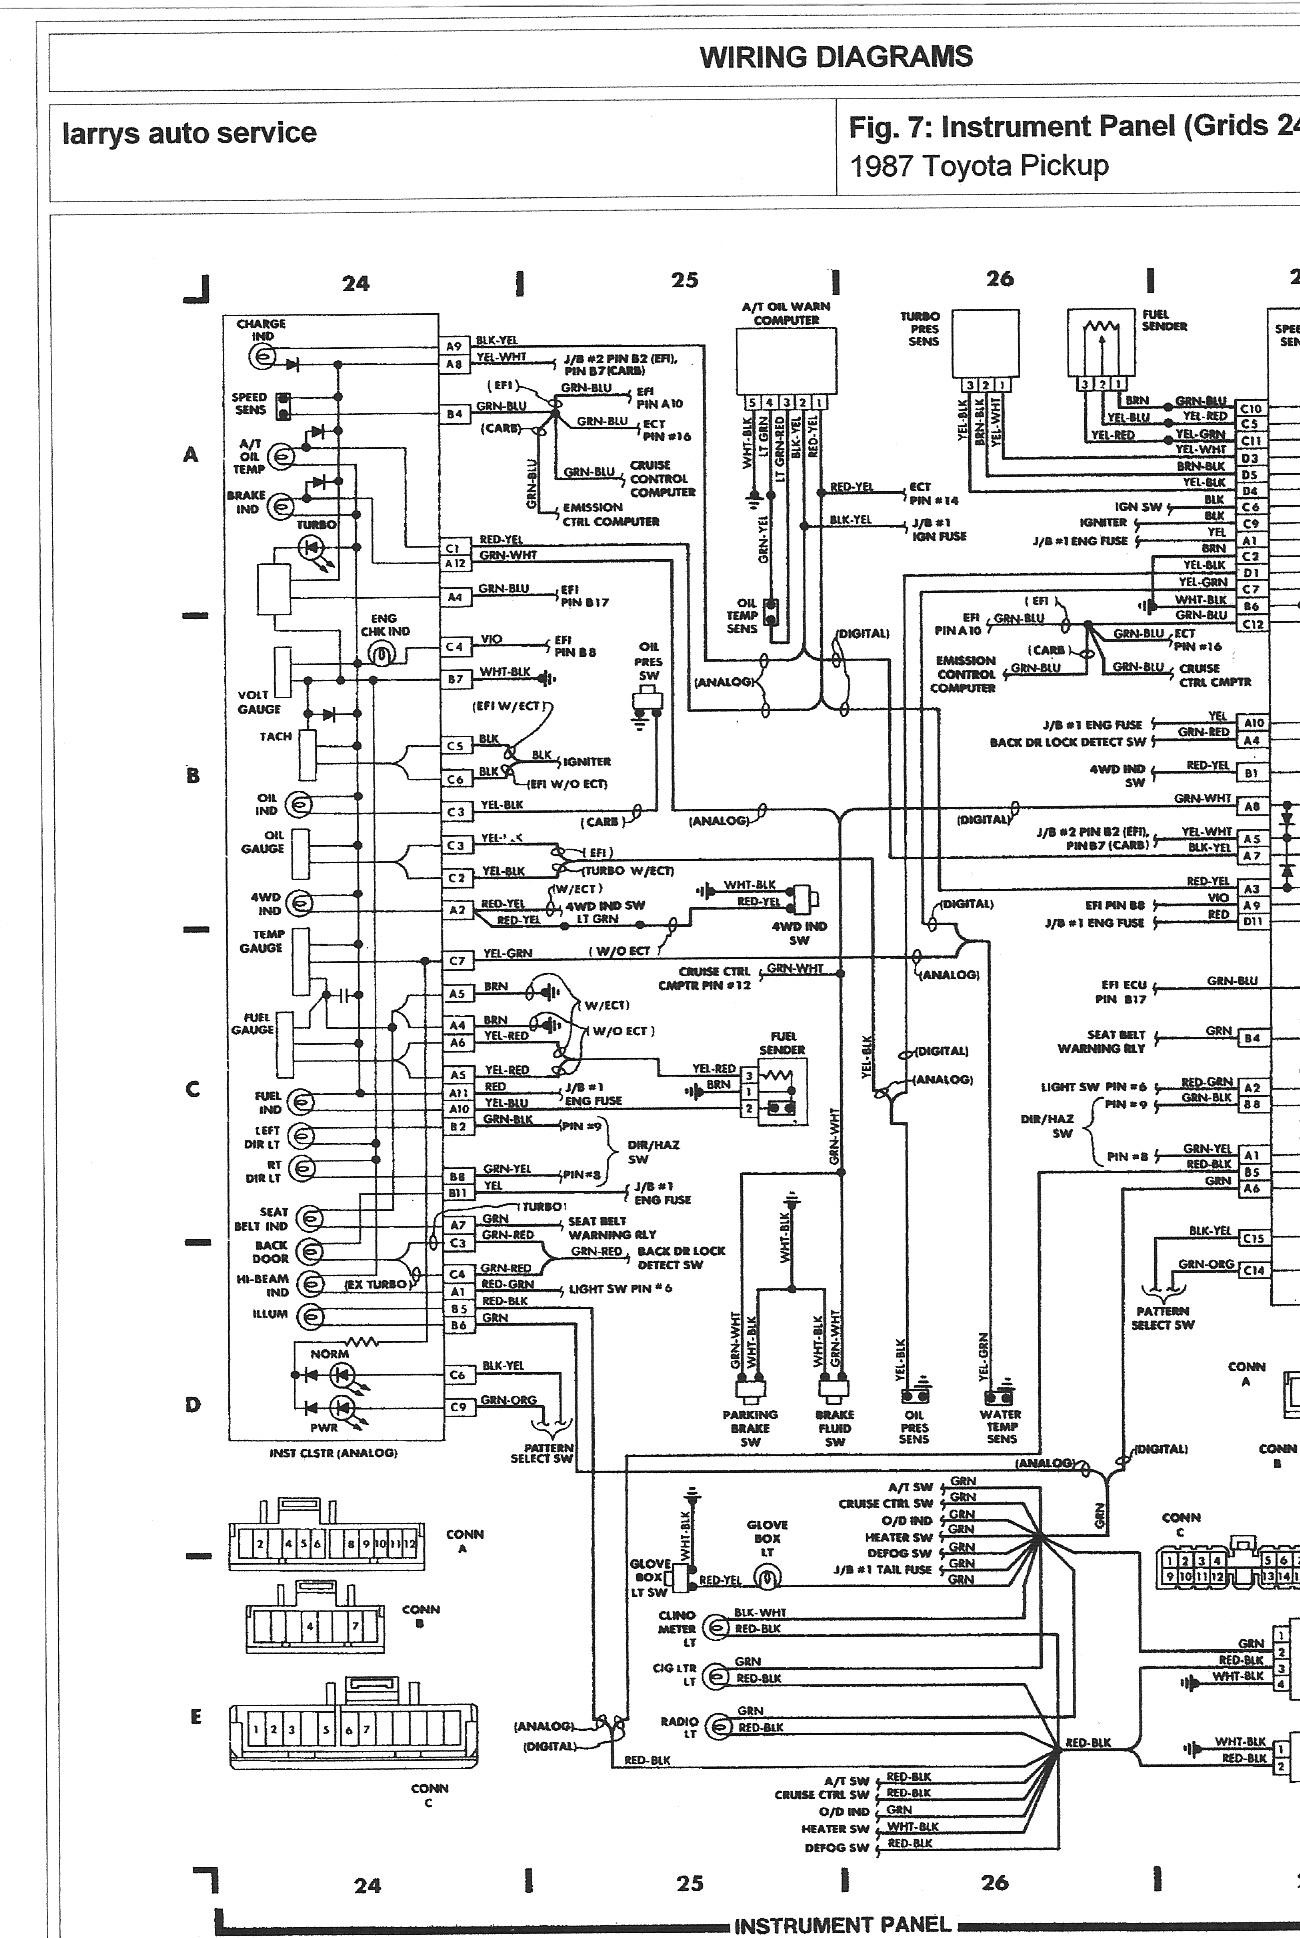 1995 toyota Camry Engine Diagram 1984 toyota Pickup Engine Diagram Wiring Diagram User Of 1995 toyota Camry Engine Diagram